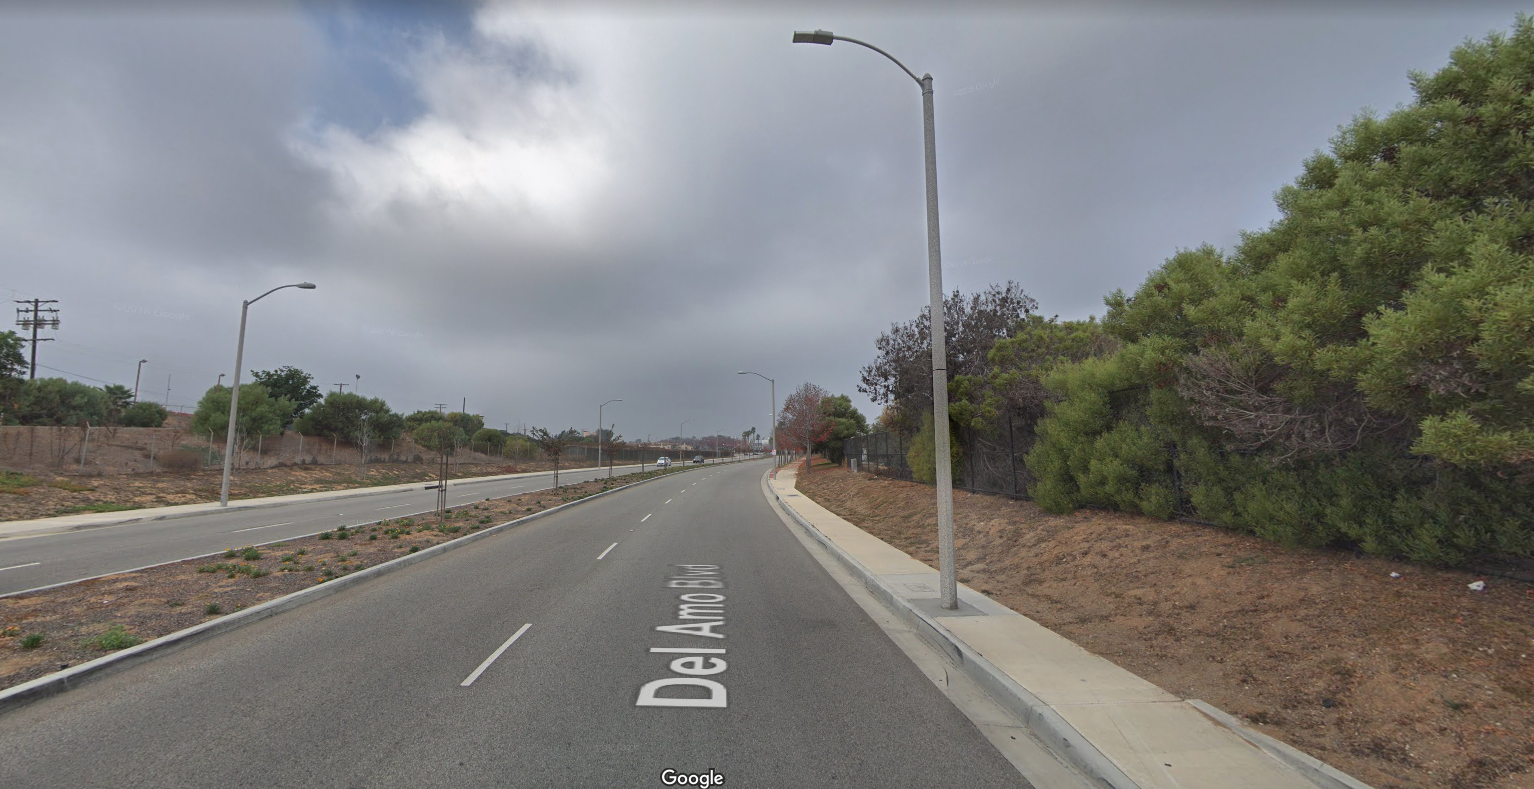 The 2300 block of Del Amo Boulevard in Torrance is seen in a Google Maps Street View image on March 26, 2019.